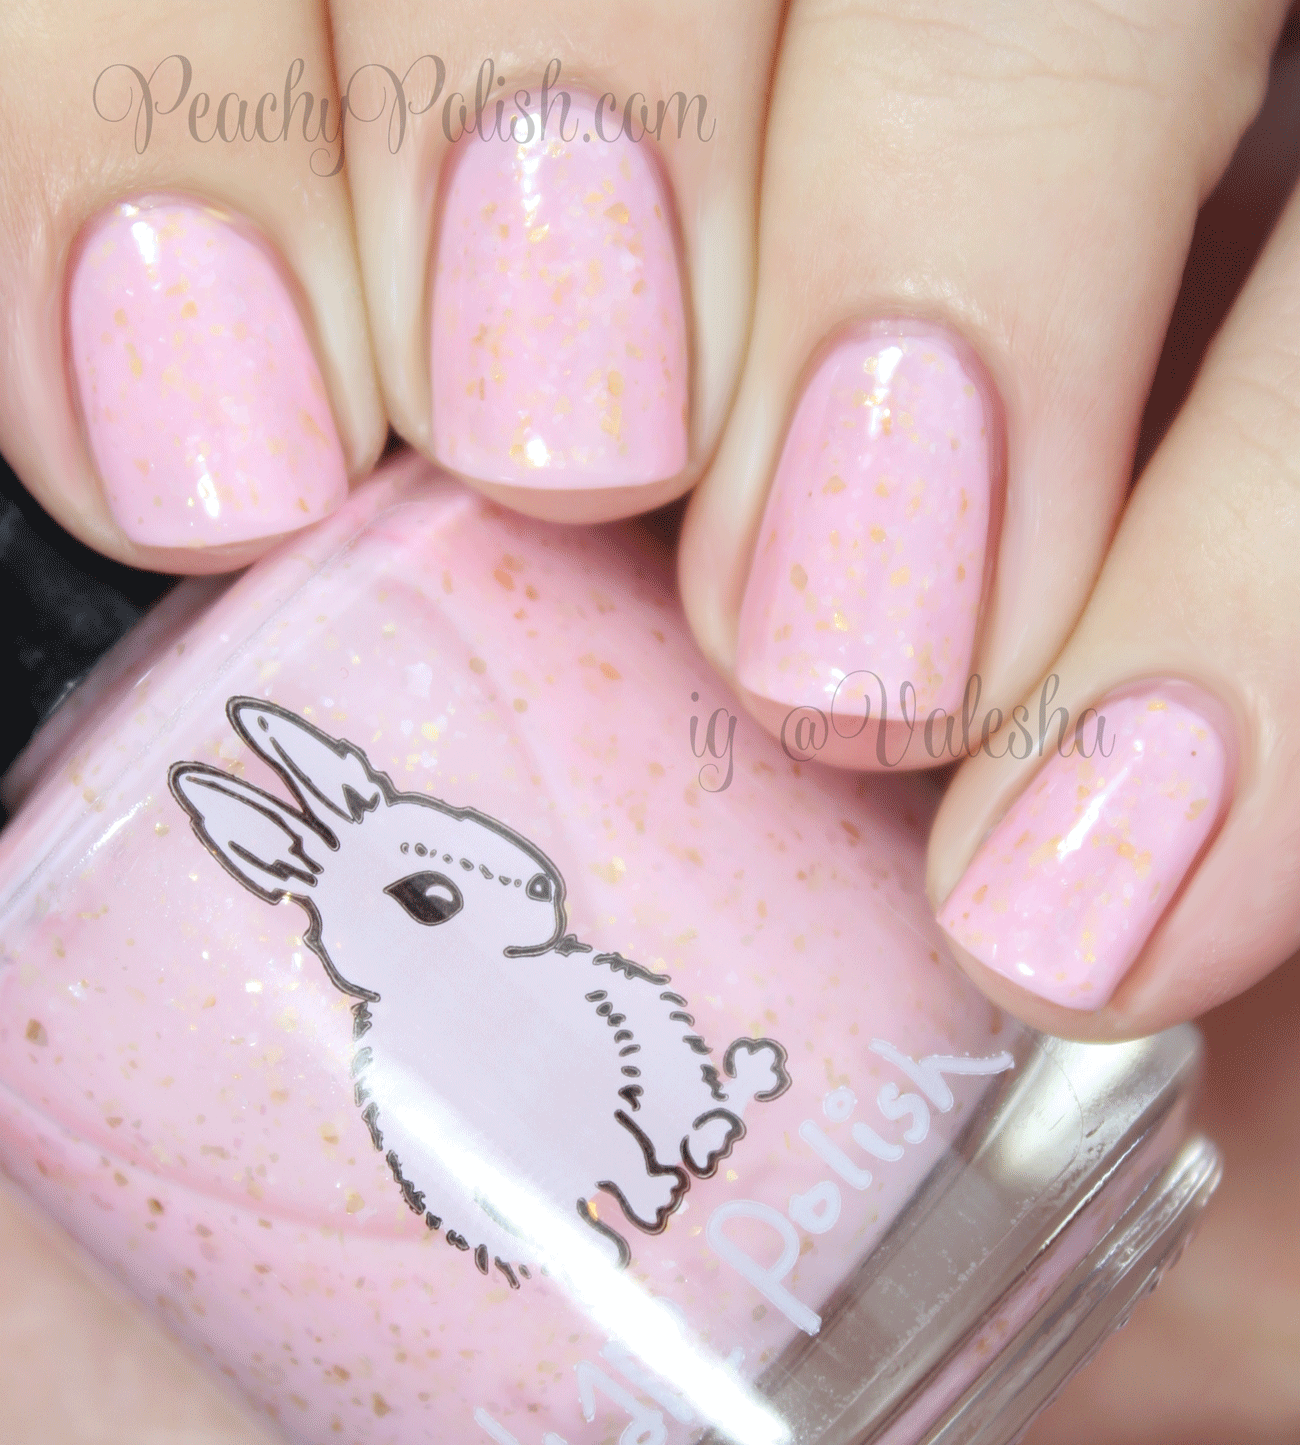 Hare Polish Fall 2013 The Coin Operation Collection Swatches